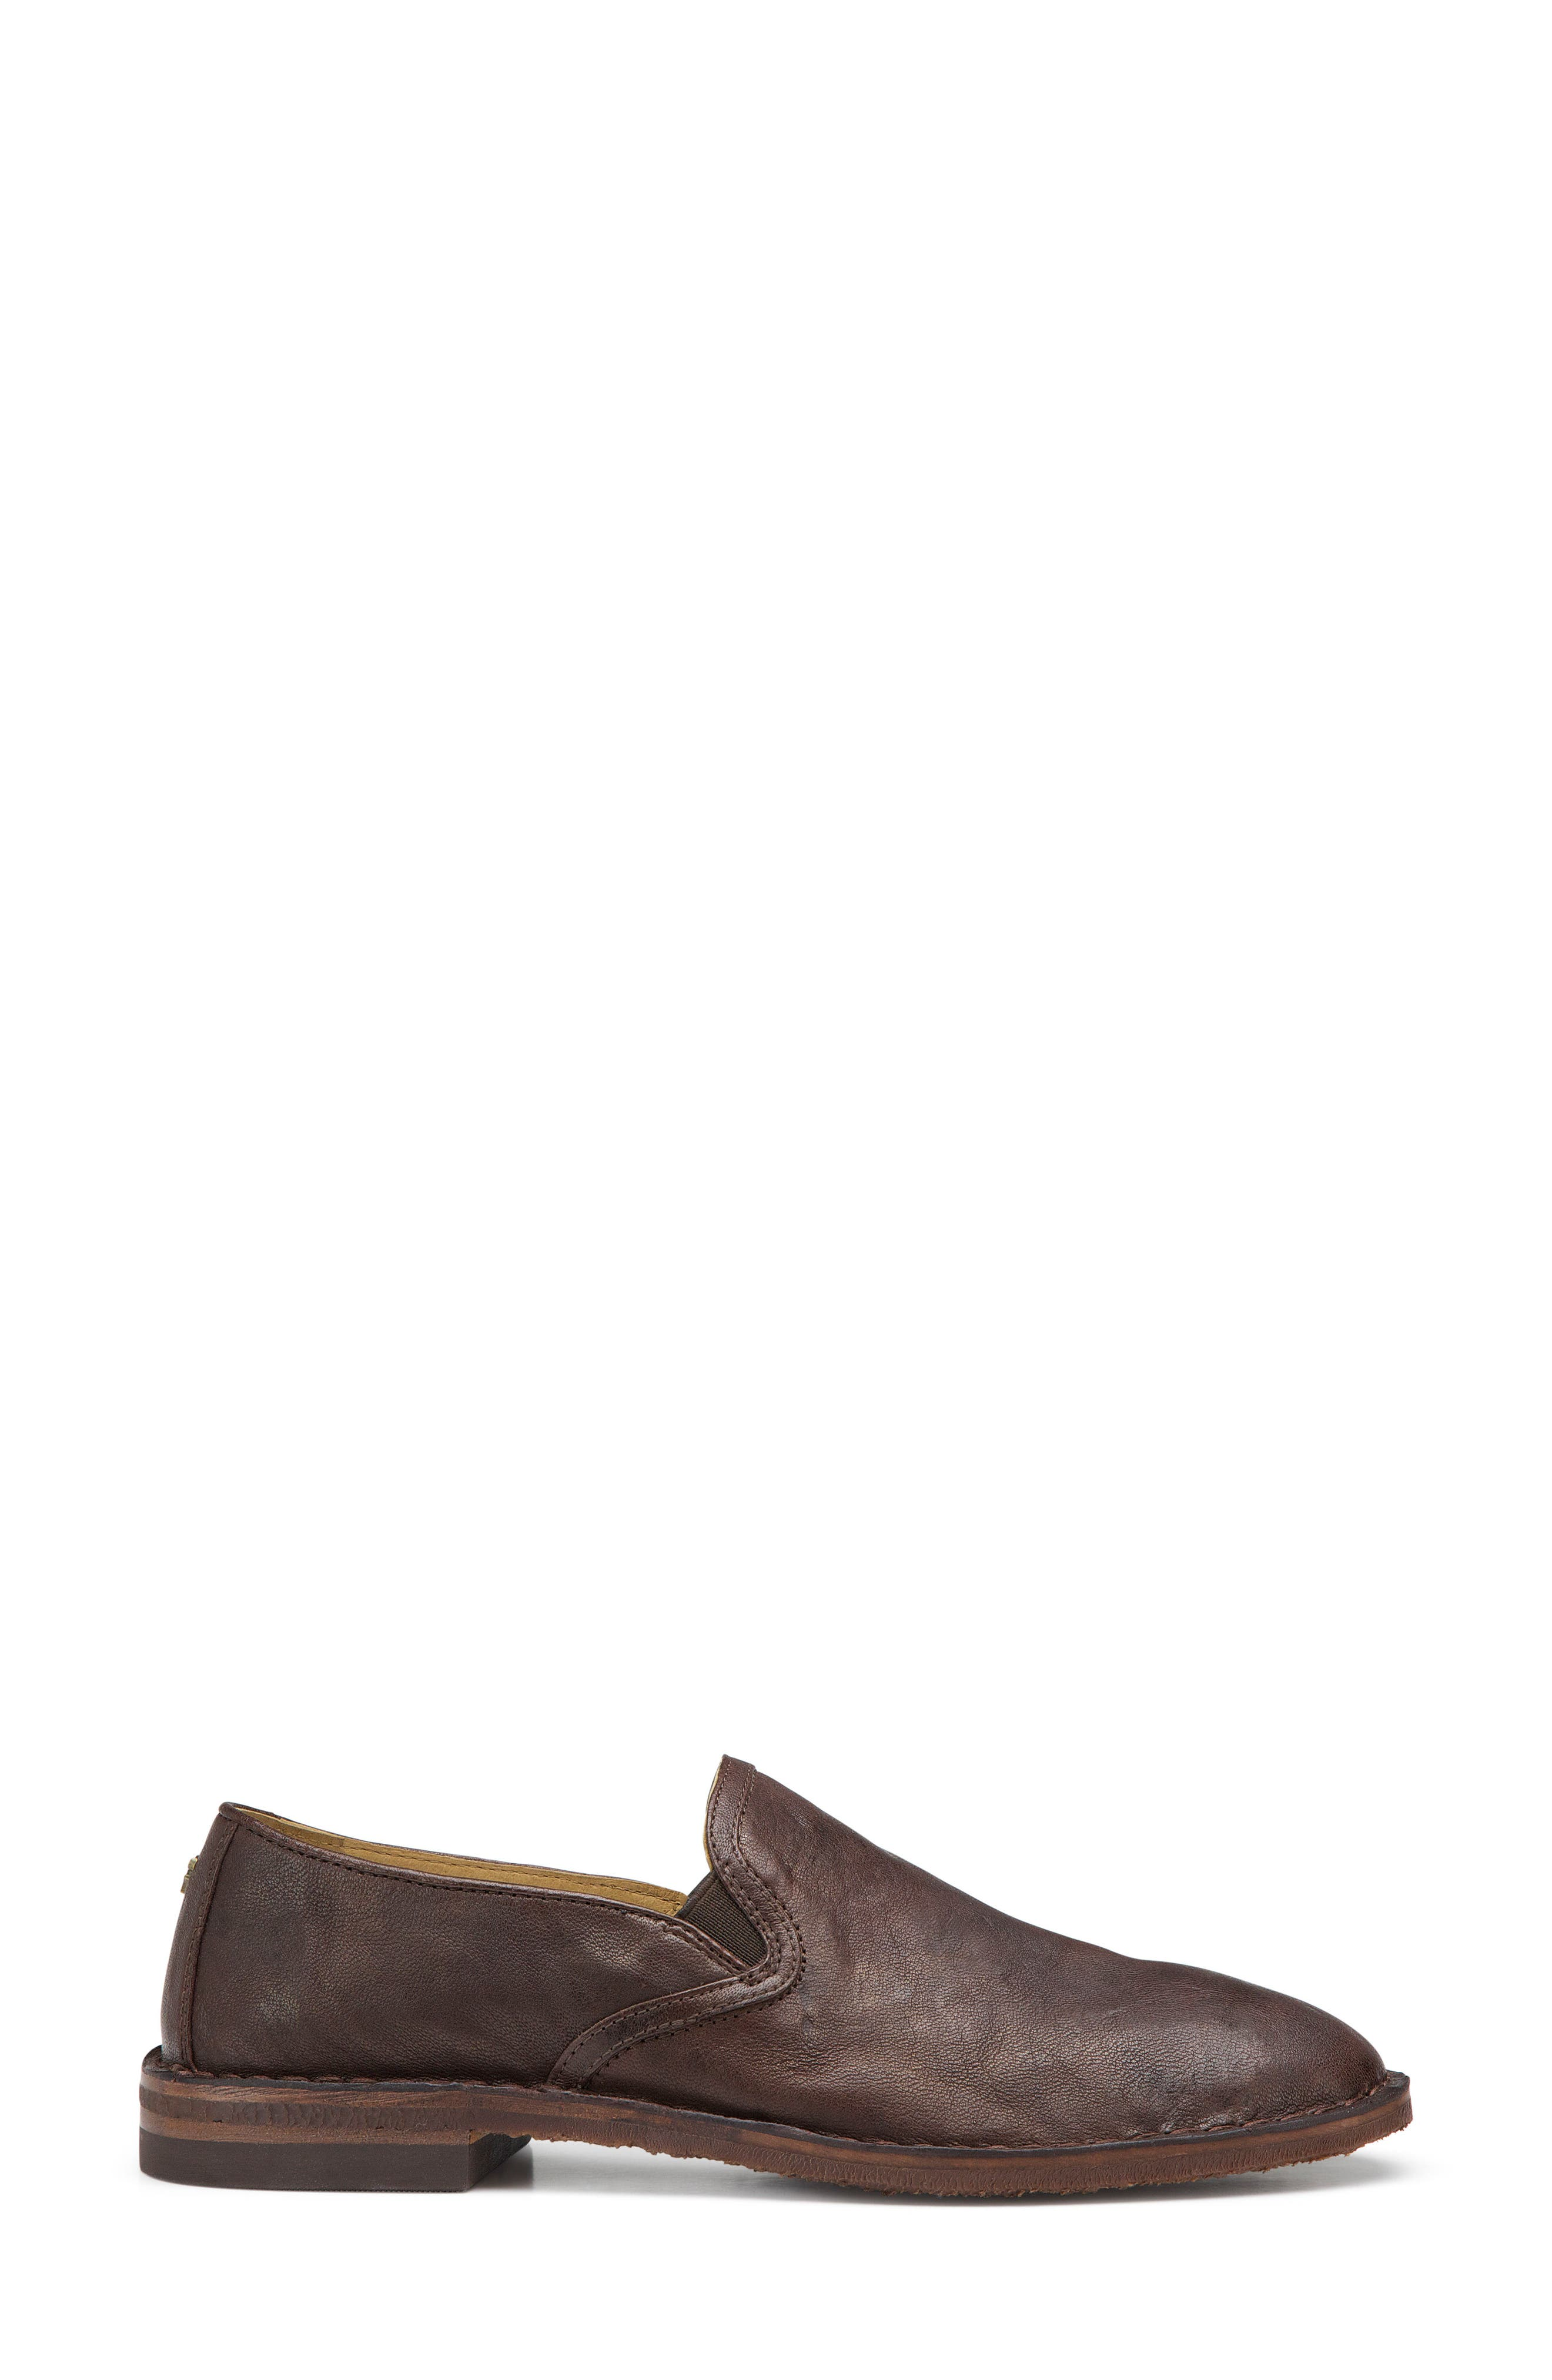 'Ali' Flat,                             Alternate thumbnail 3, color,                             BROWN LEATHER